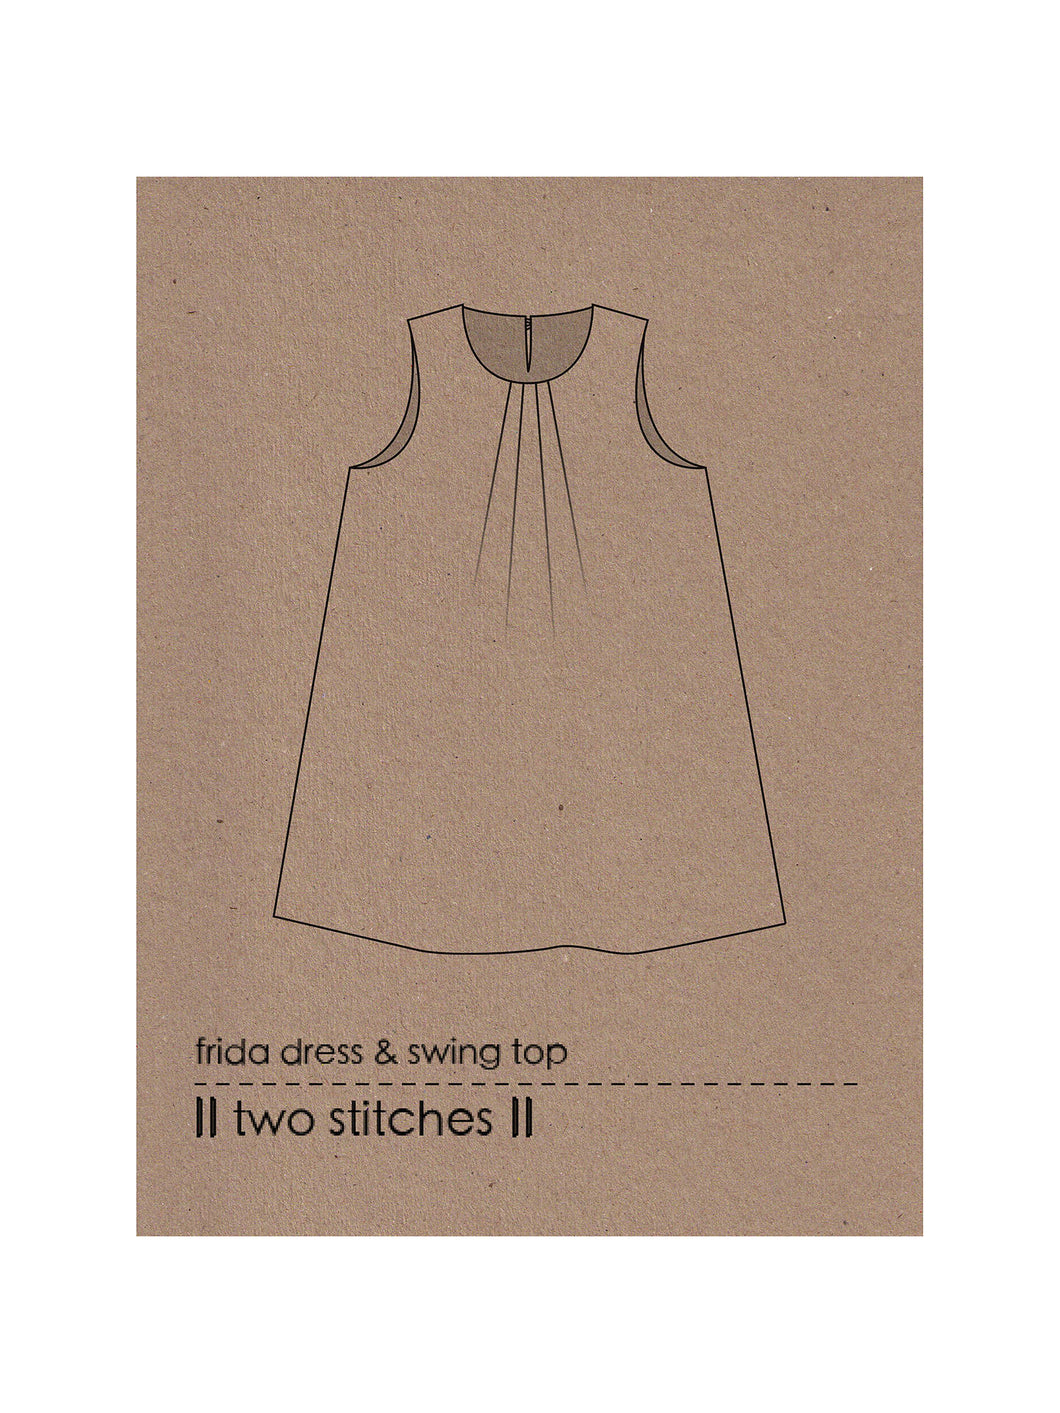 frida dress & swing top - two stitches